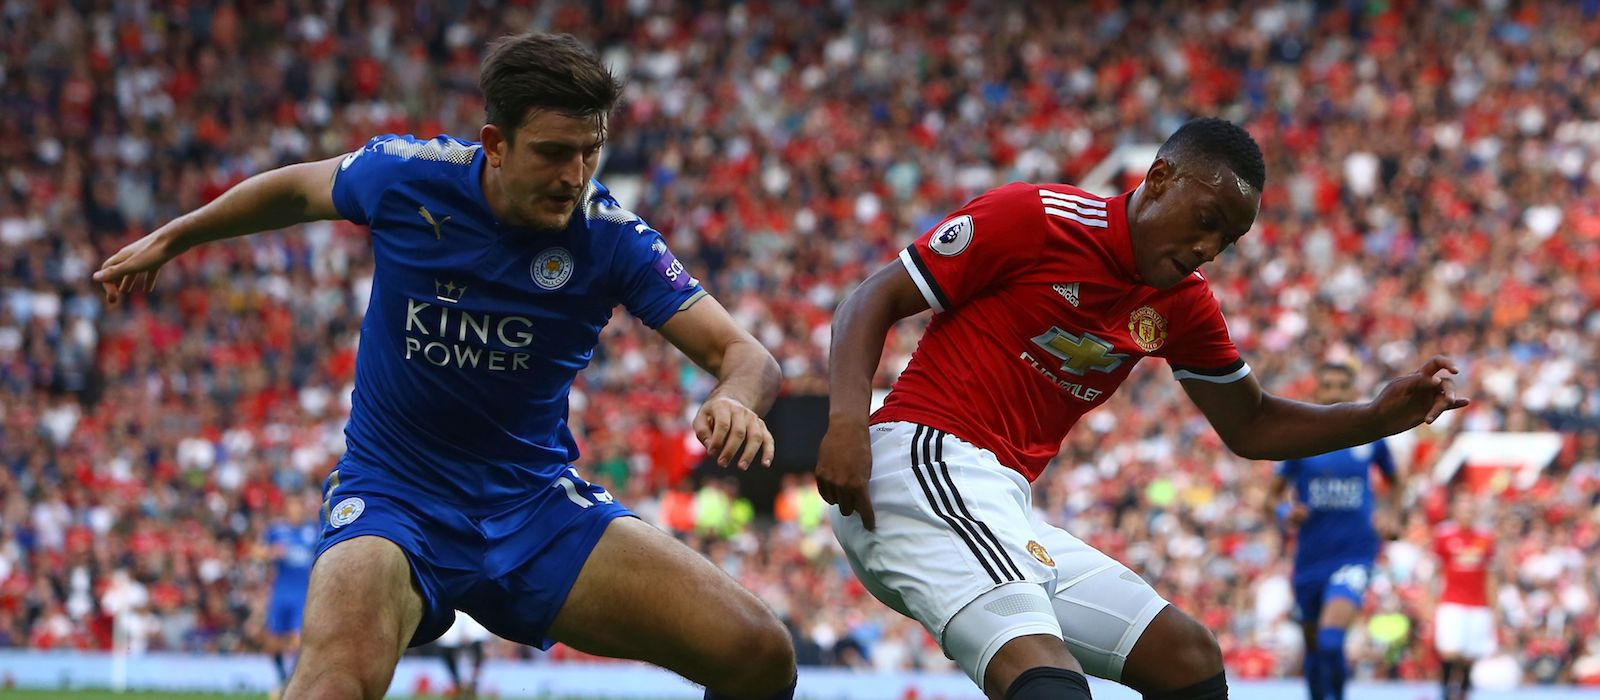 Manchester United preparing Harry Maguire bid – report